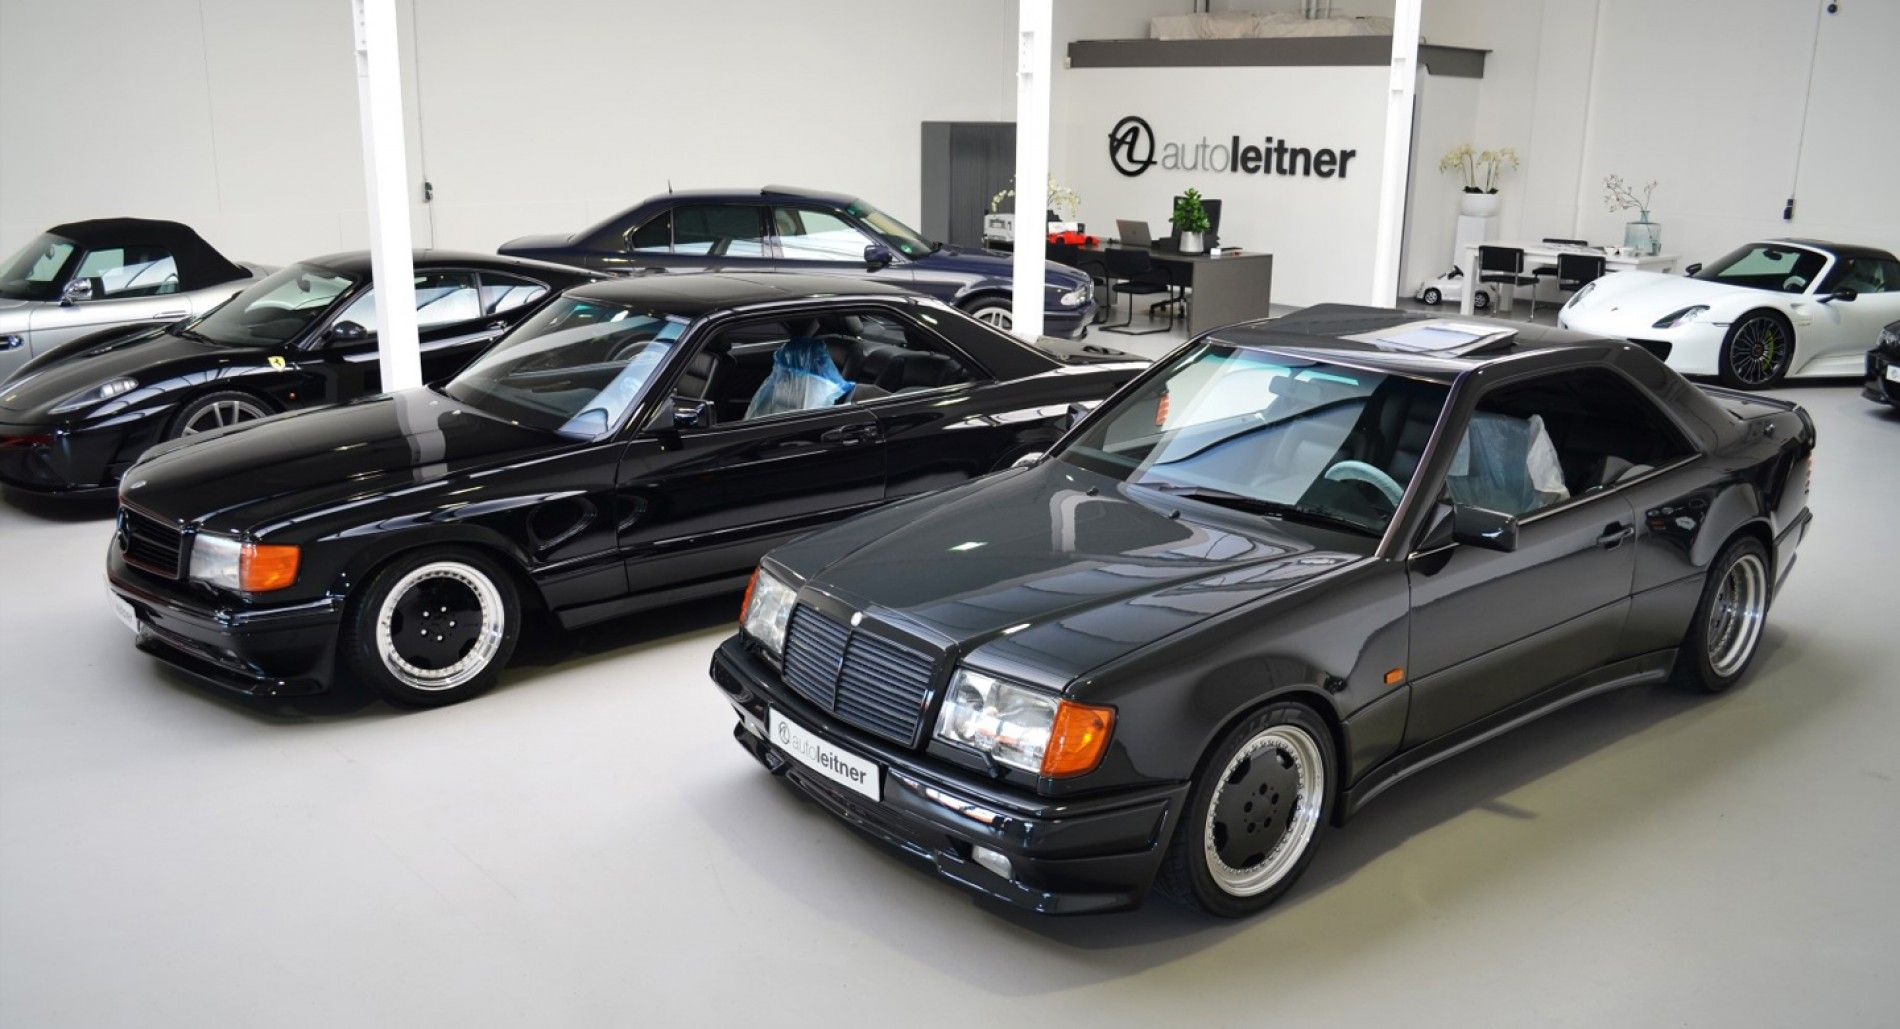 Mercedes 560 Sec 6 0 Amg And Mercedes 300ce 6 0 Amg Hammer With